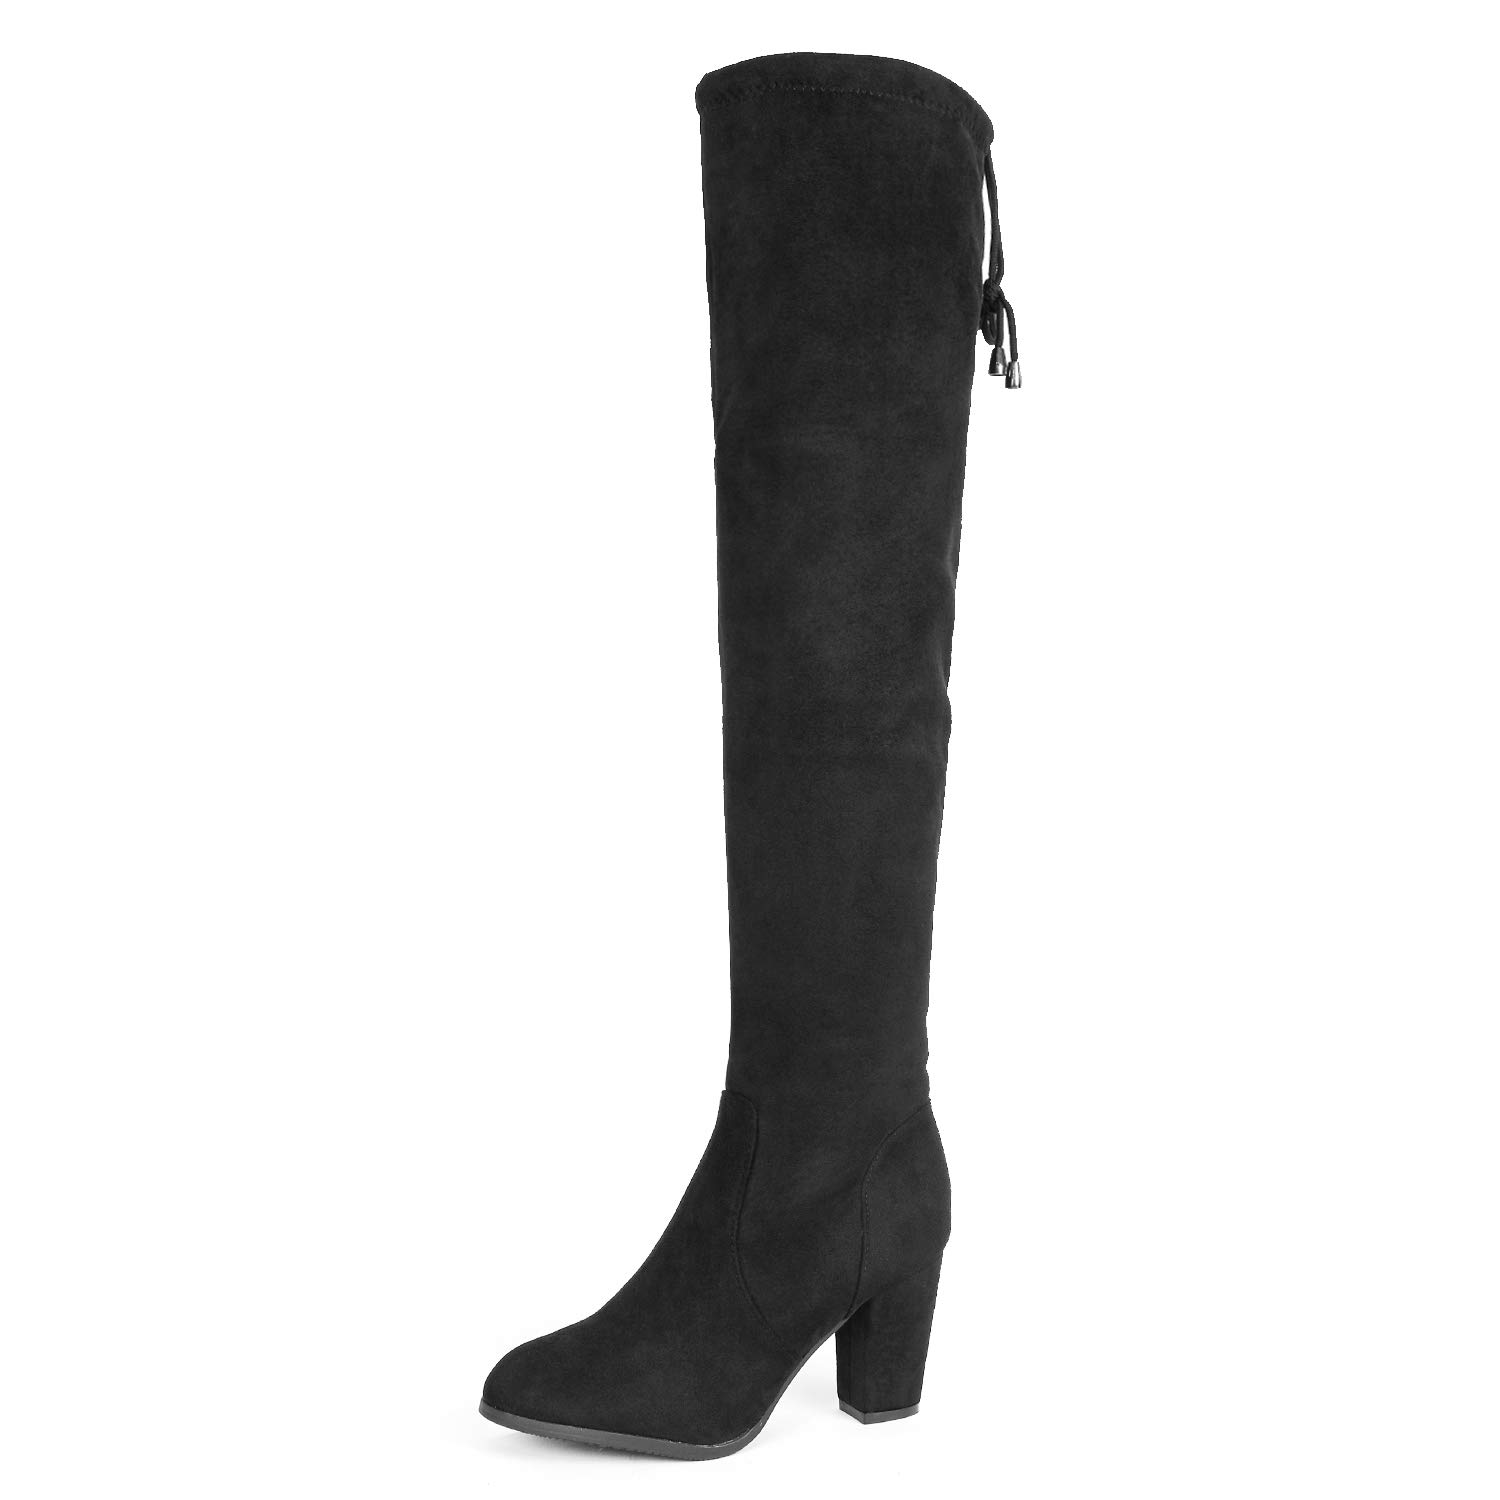 DREAM PAIRS Highleg Women's Thigh High Fashion Over The Knee Drawstring Strech Block Mid Heel Boots Black-SZ-8.5 by DREAM PAIRS